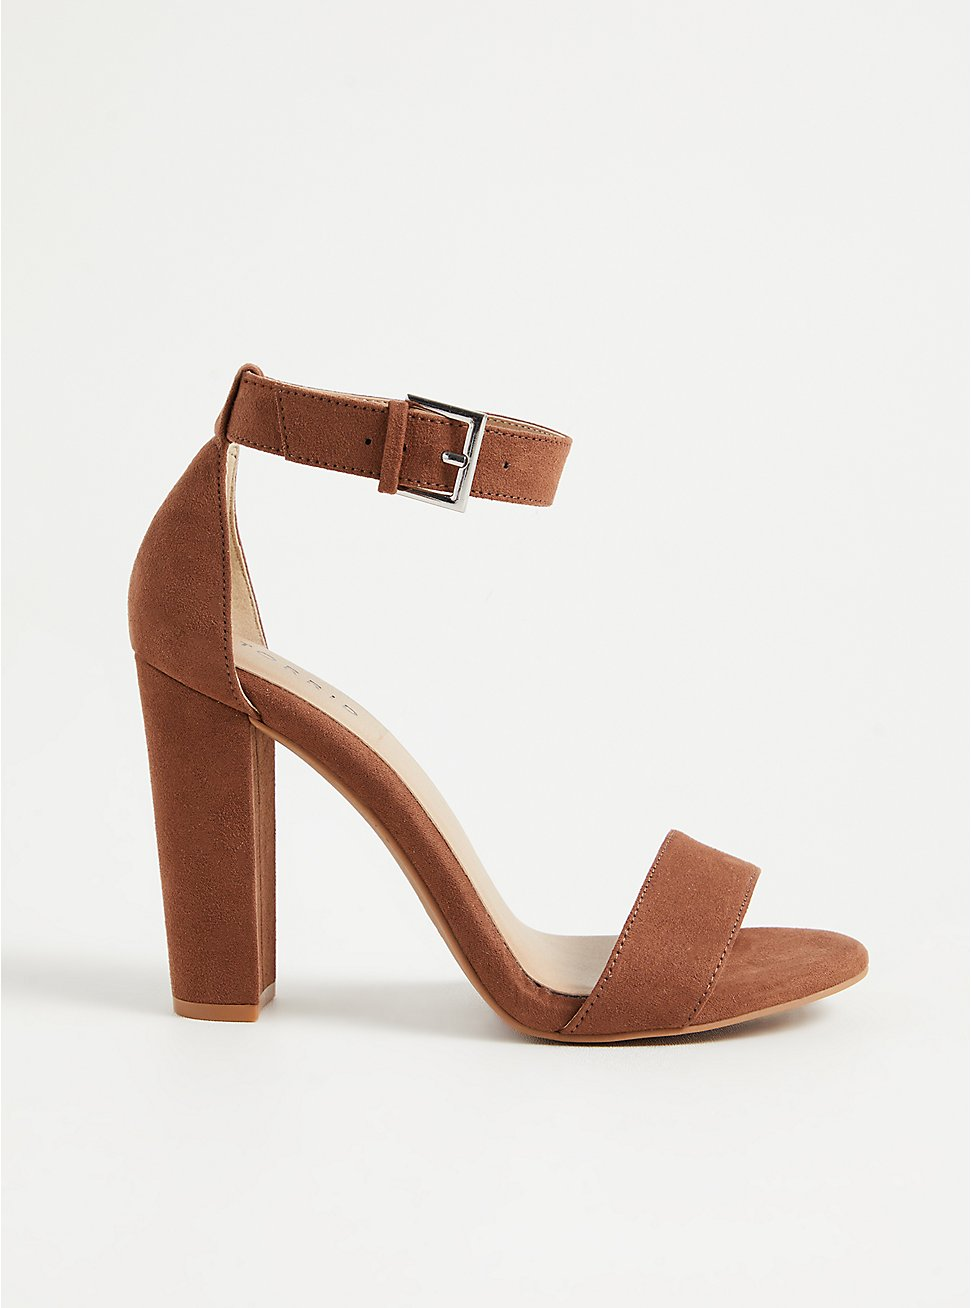 Staci - Brown Faux Suede Tapered Heel (WW), BROWN, hi-res